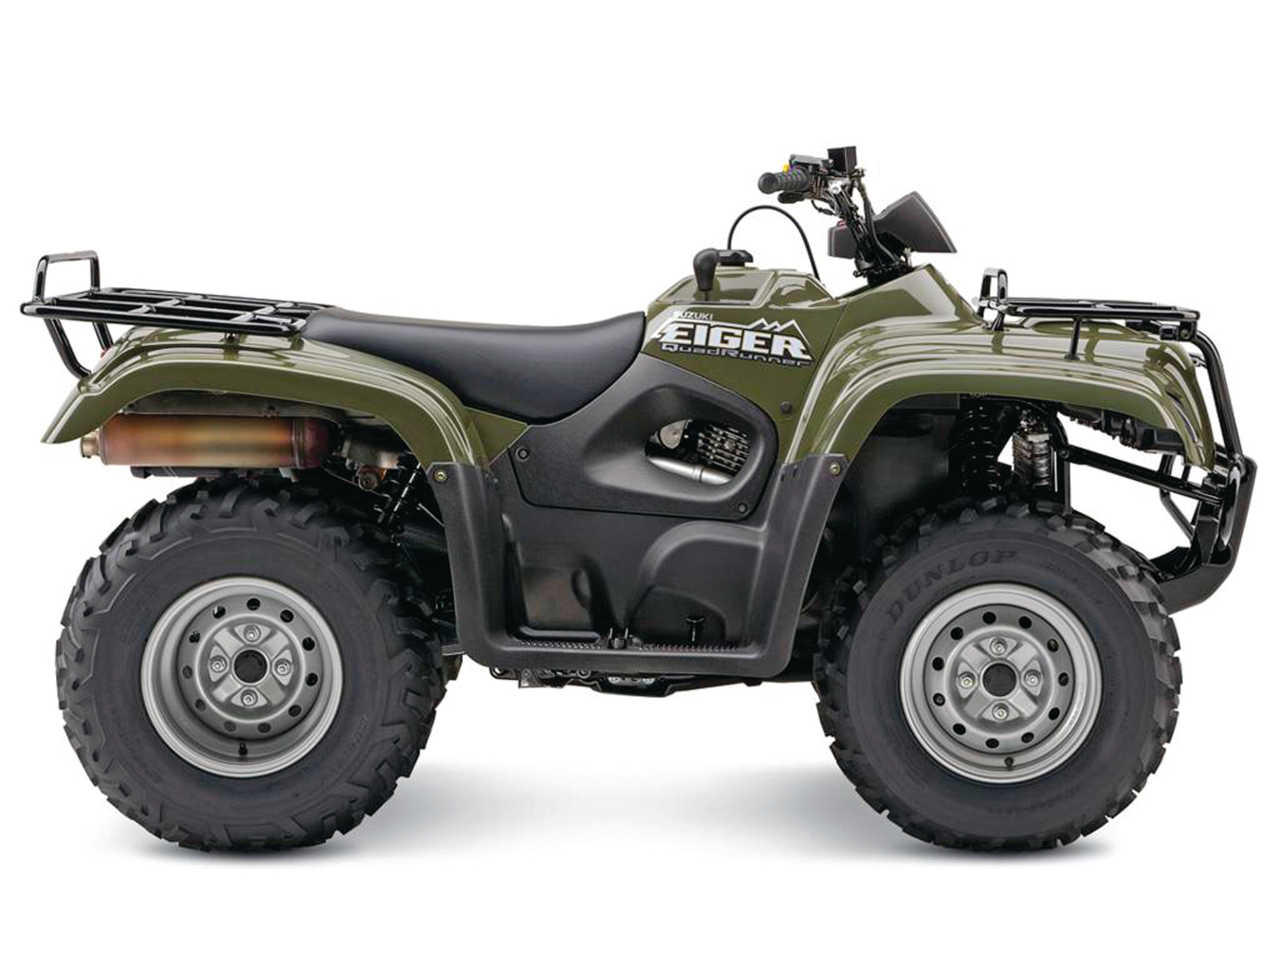 hight resolution of 2015 suzuki quadrunner eiger green right studio jpg